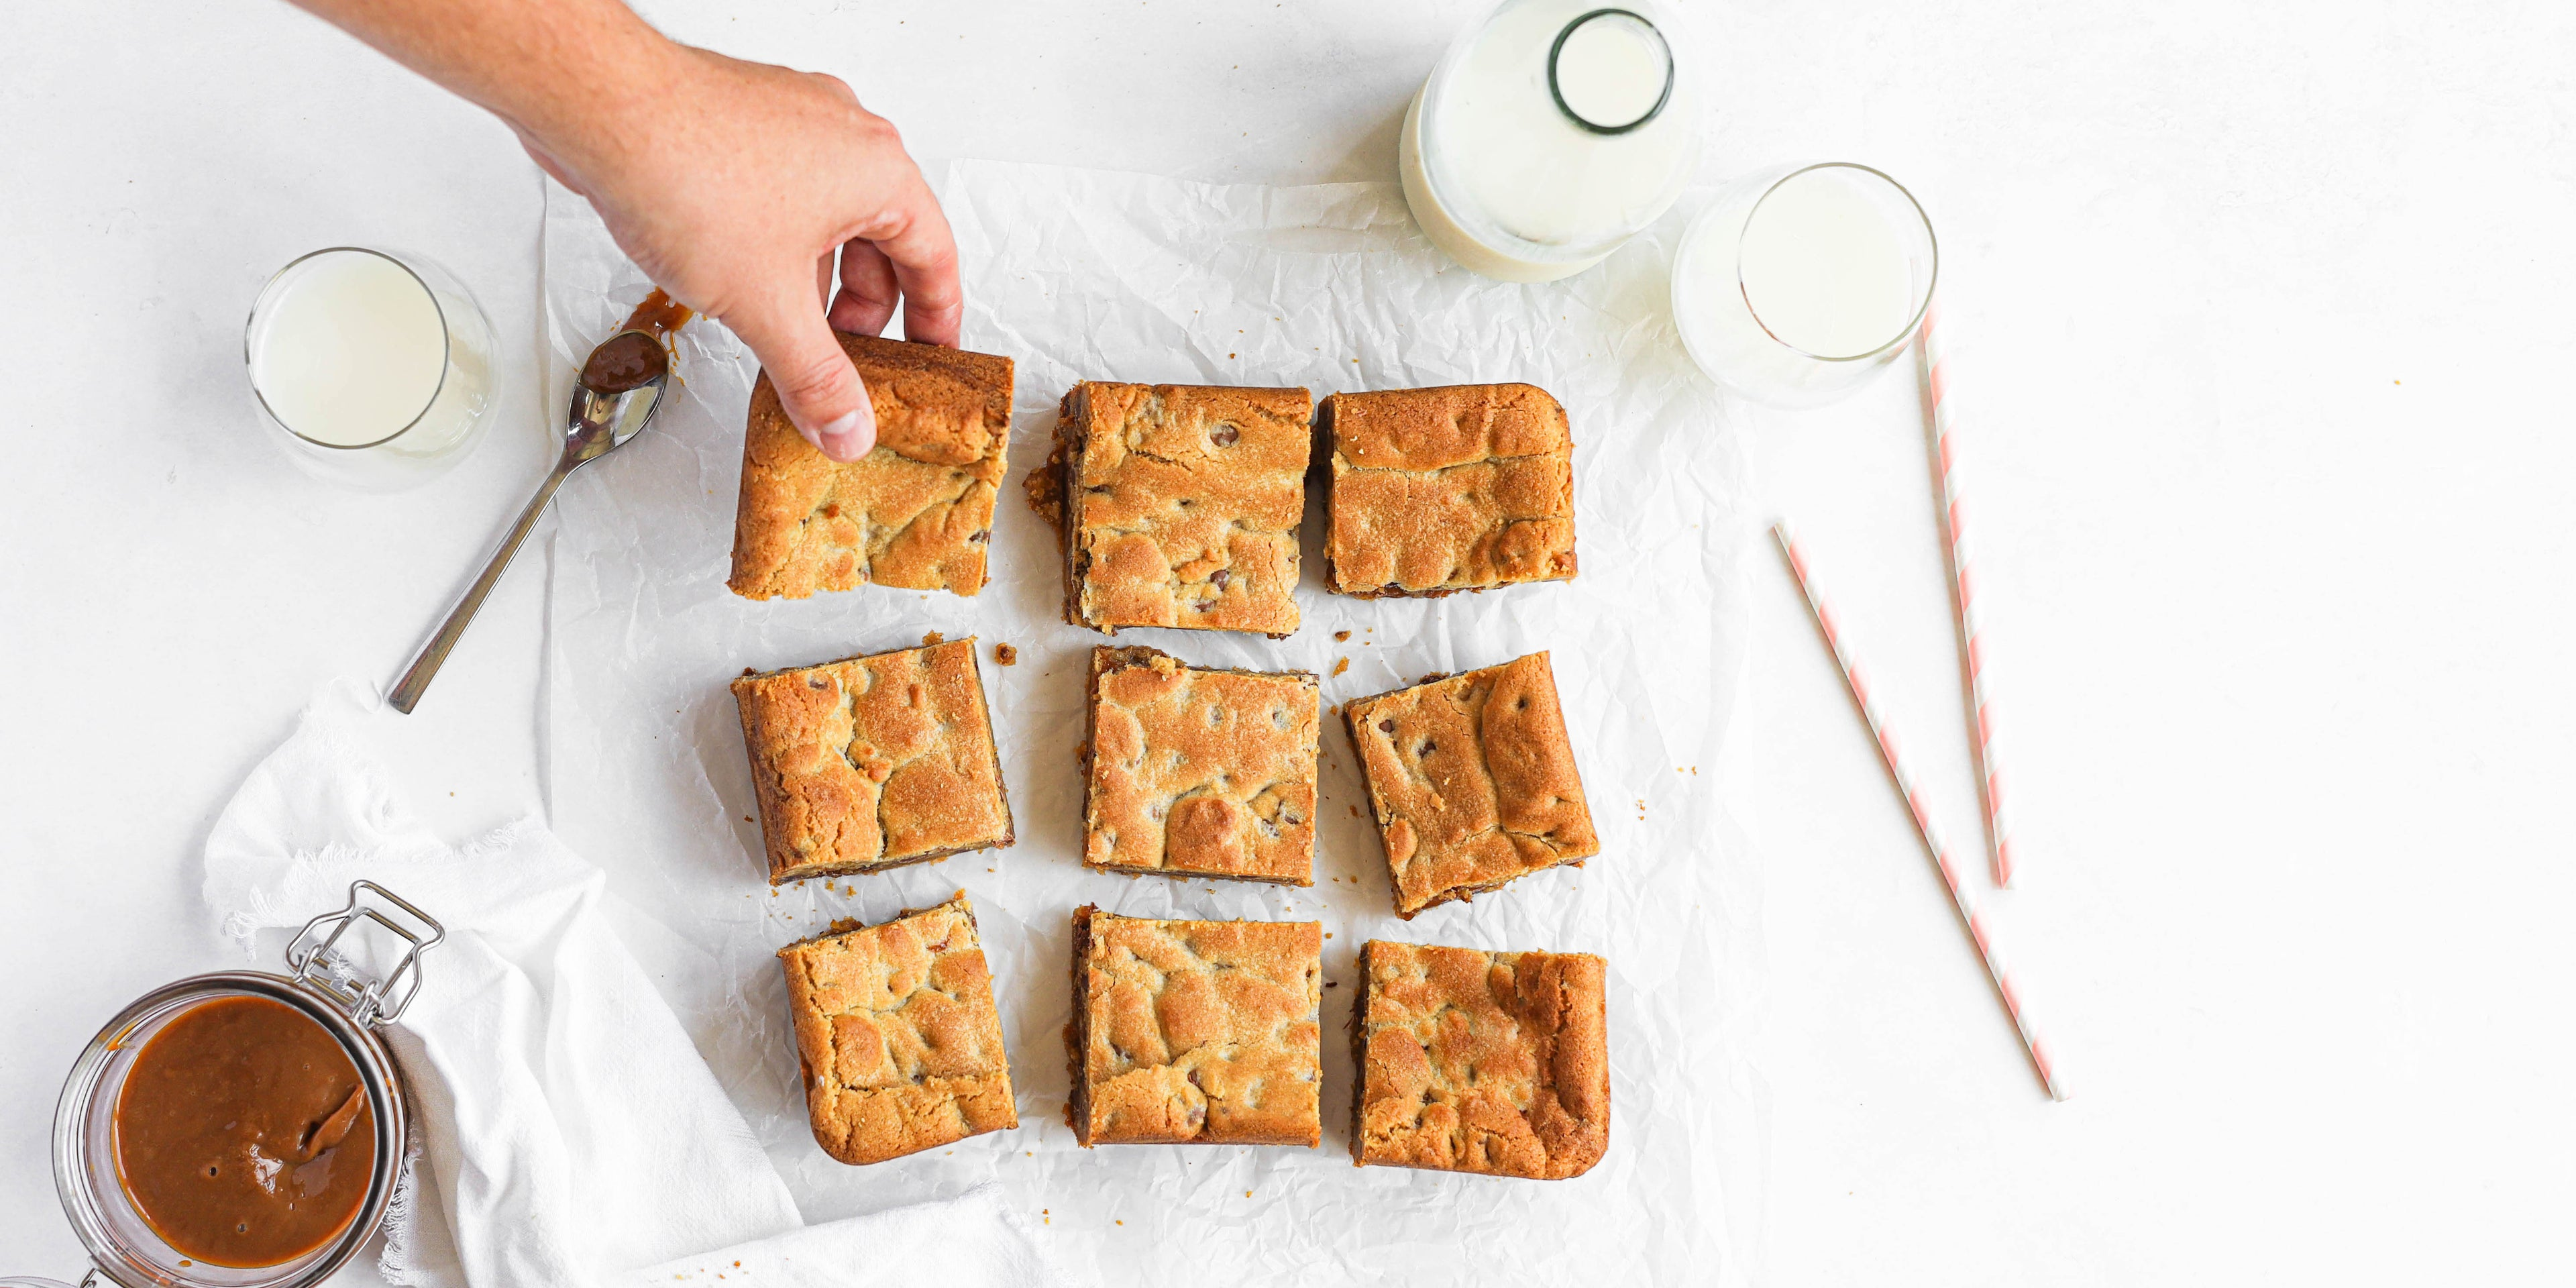 Salted Caramel Cookie Traybake cut onto baking paper, with hand reaching for a square